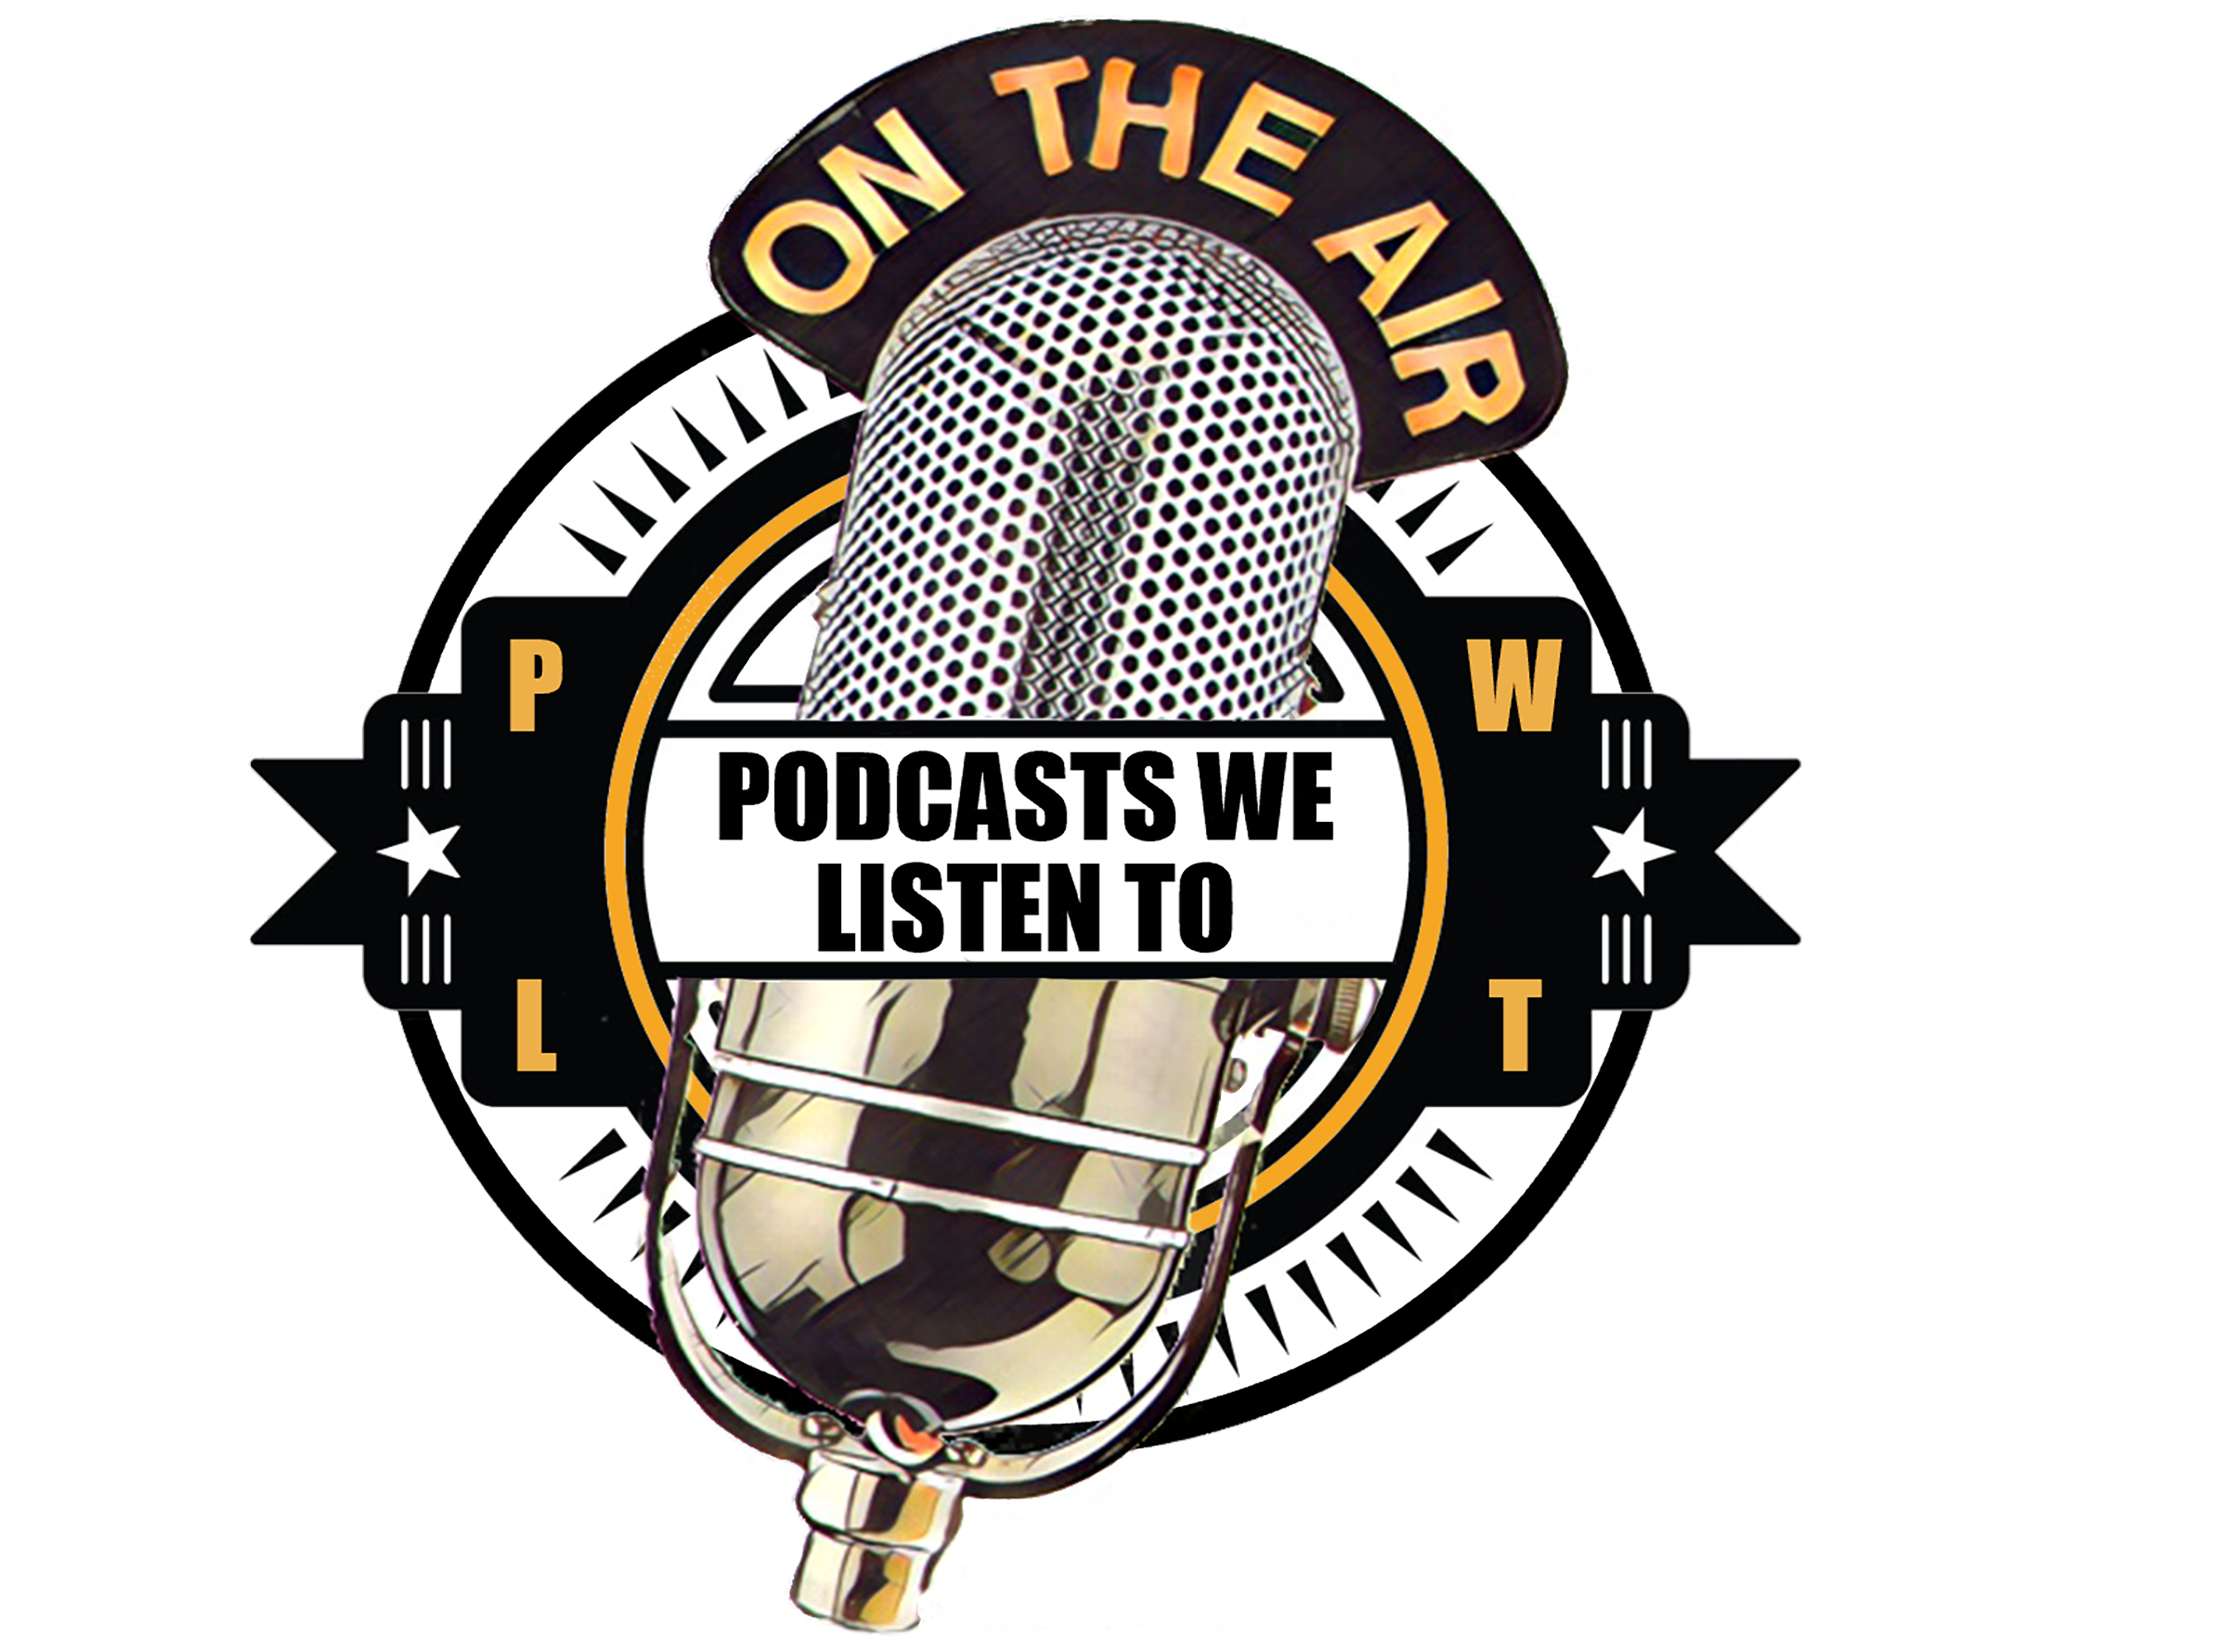 Podcasts We Listen To Logo